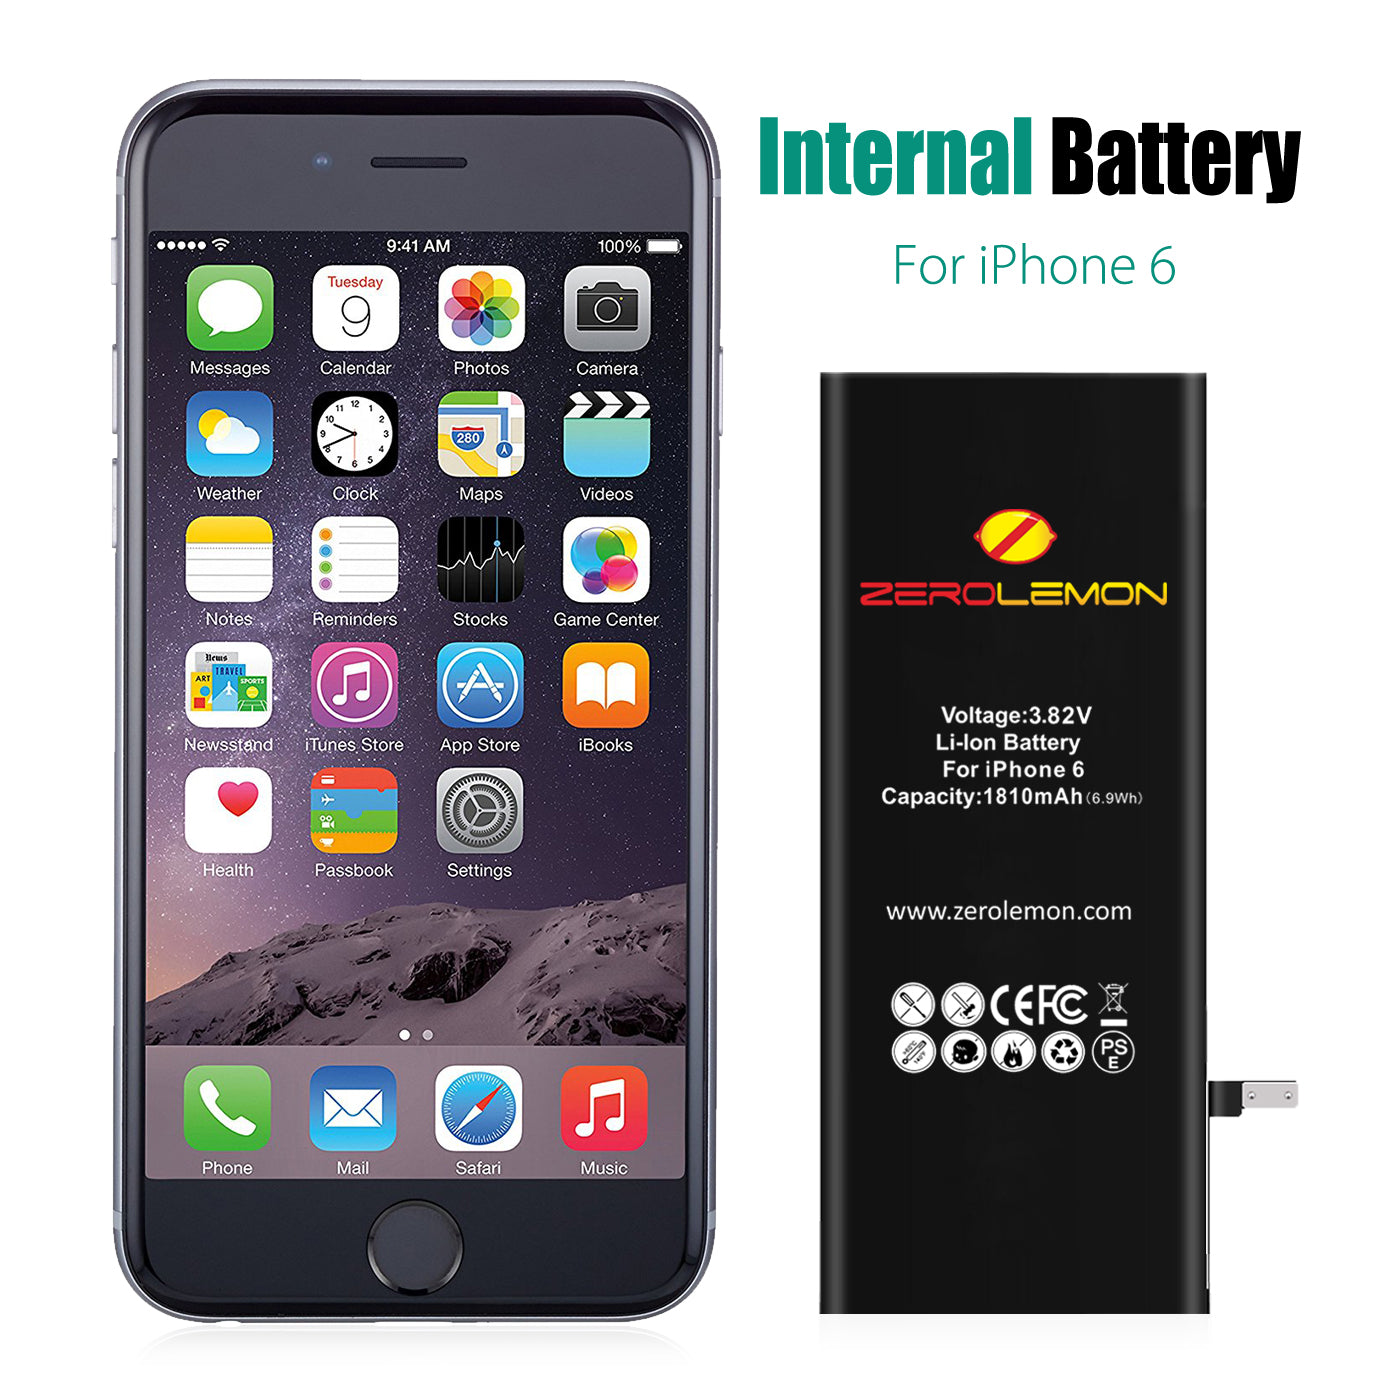 iPhone 6 Internal Li-ion Battery 1810mAh  [Shipping to US Only]